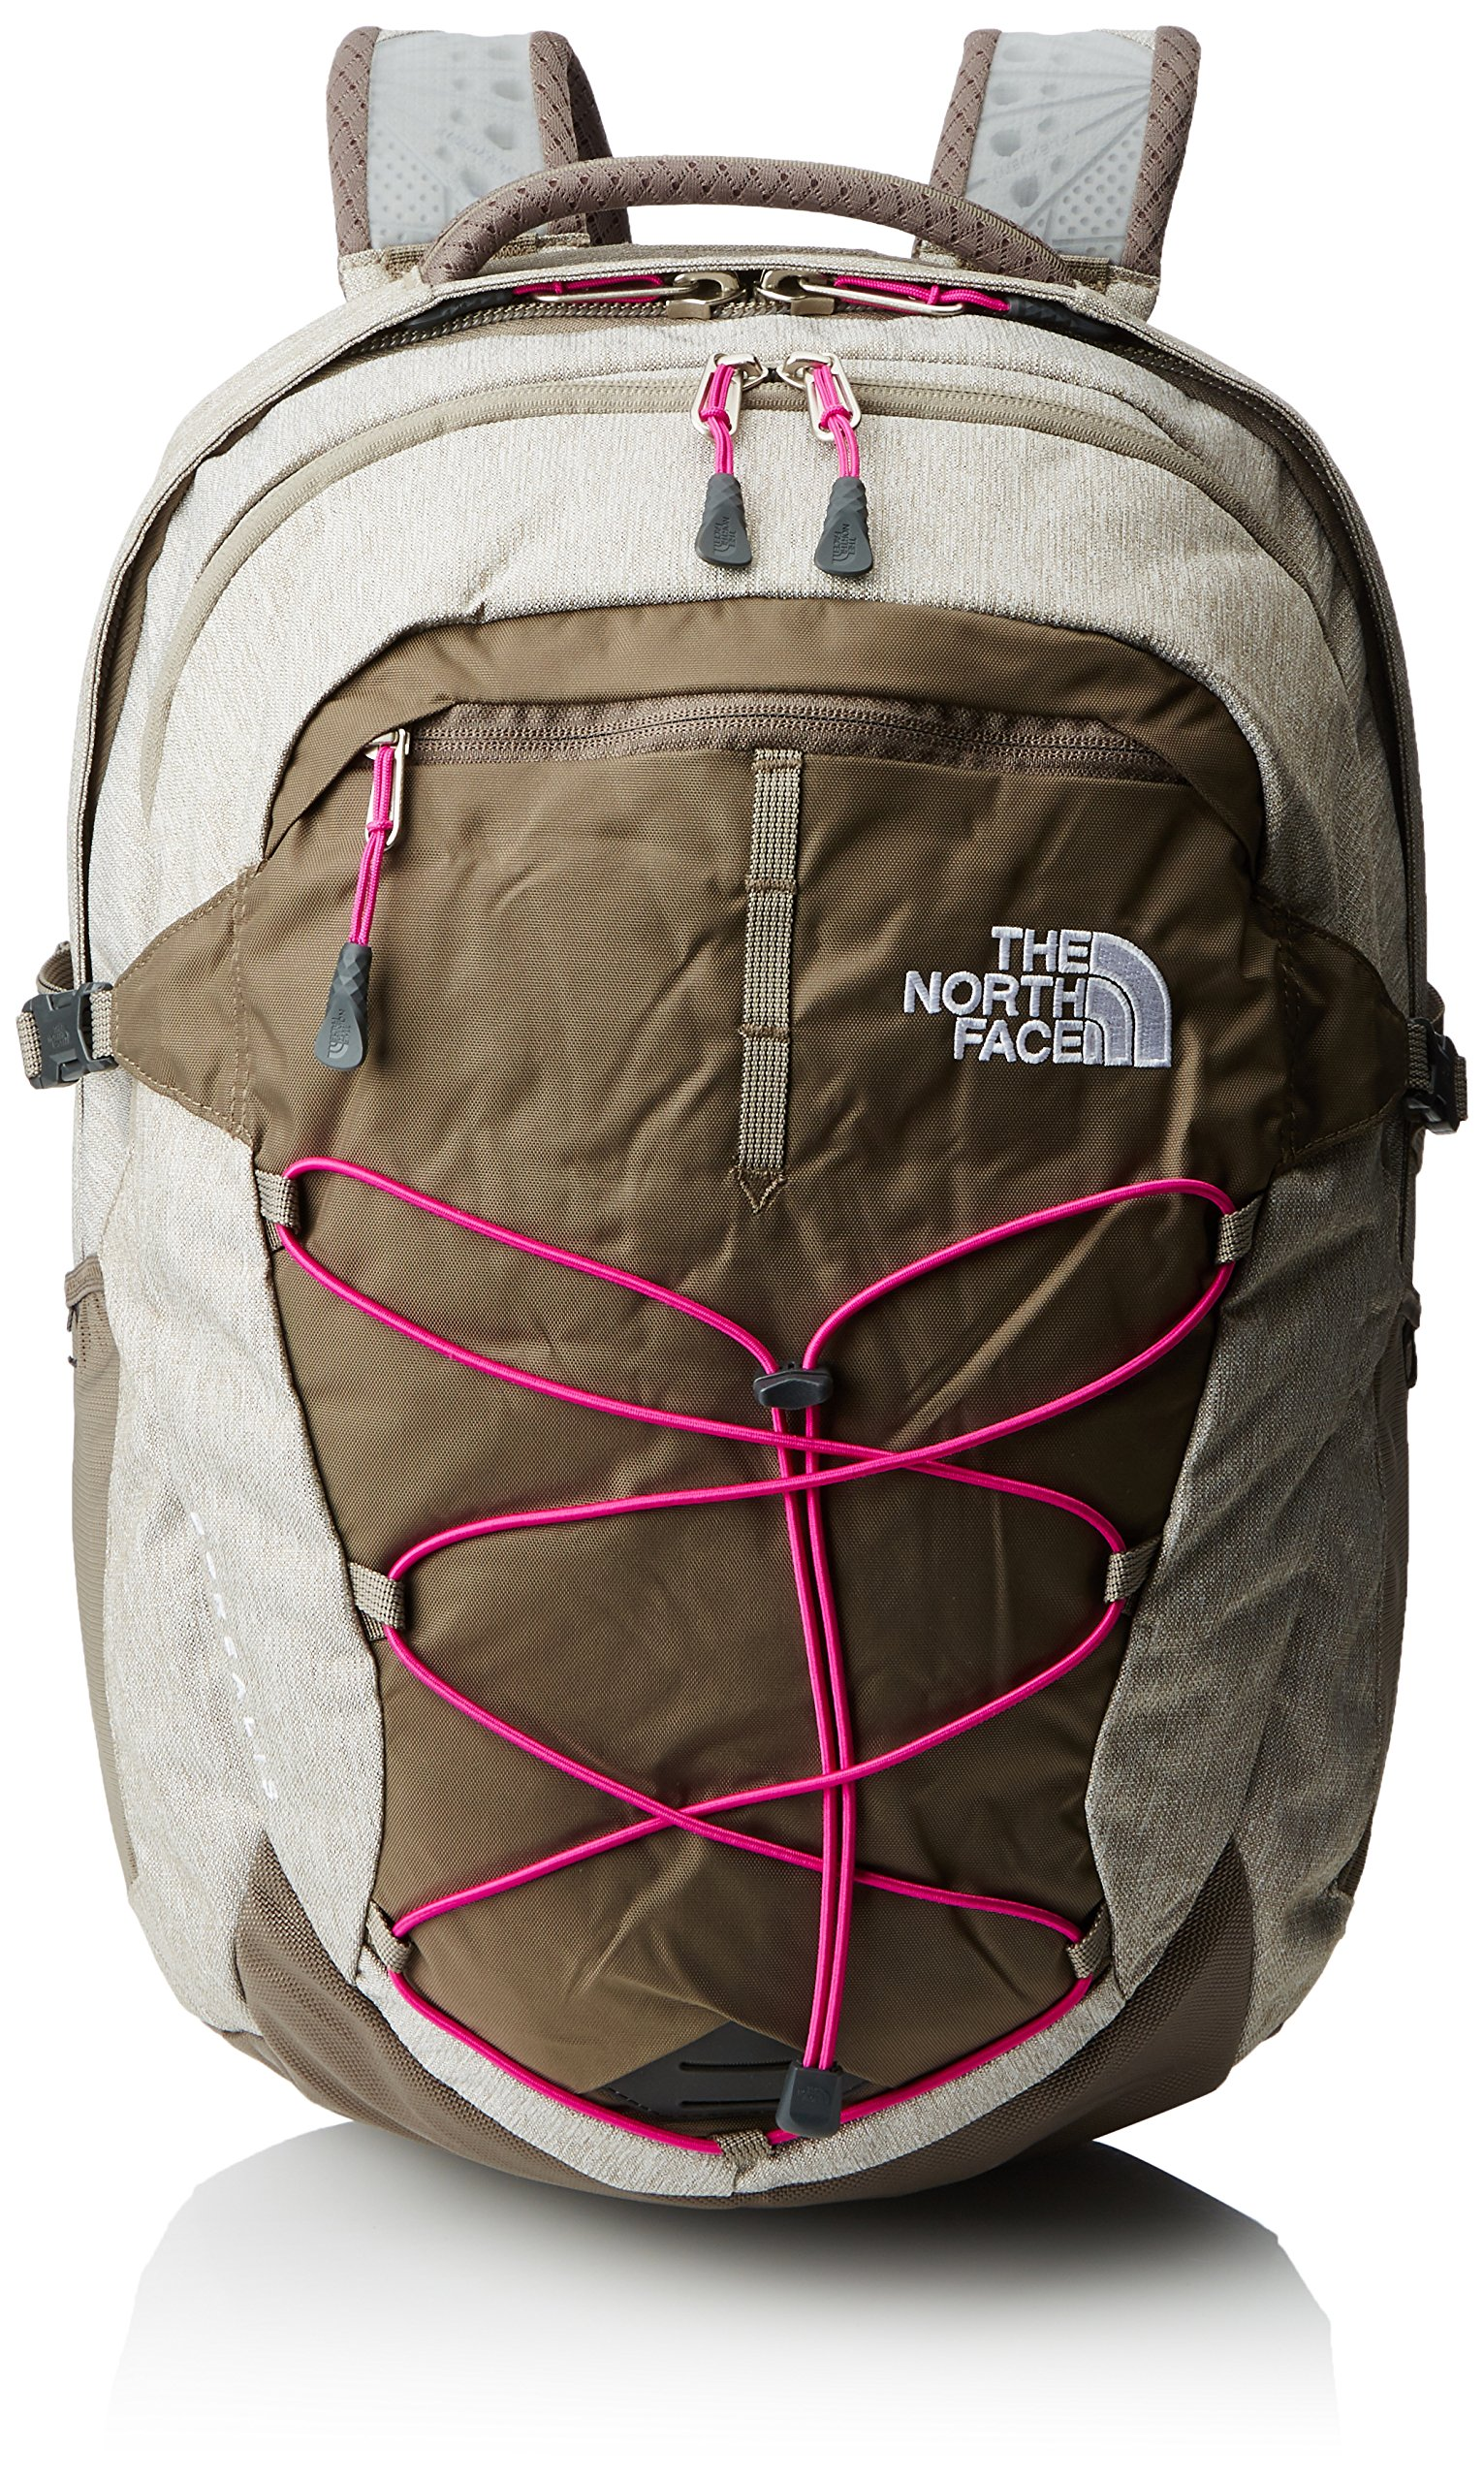 The North Face Women's Borealis Brindle Brown/Luminous Pink One Size